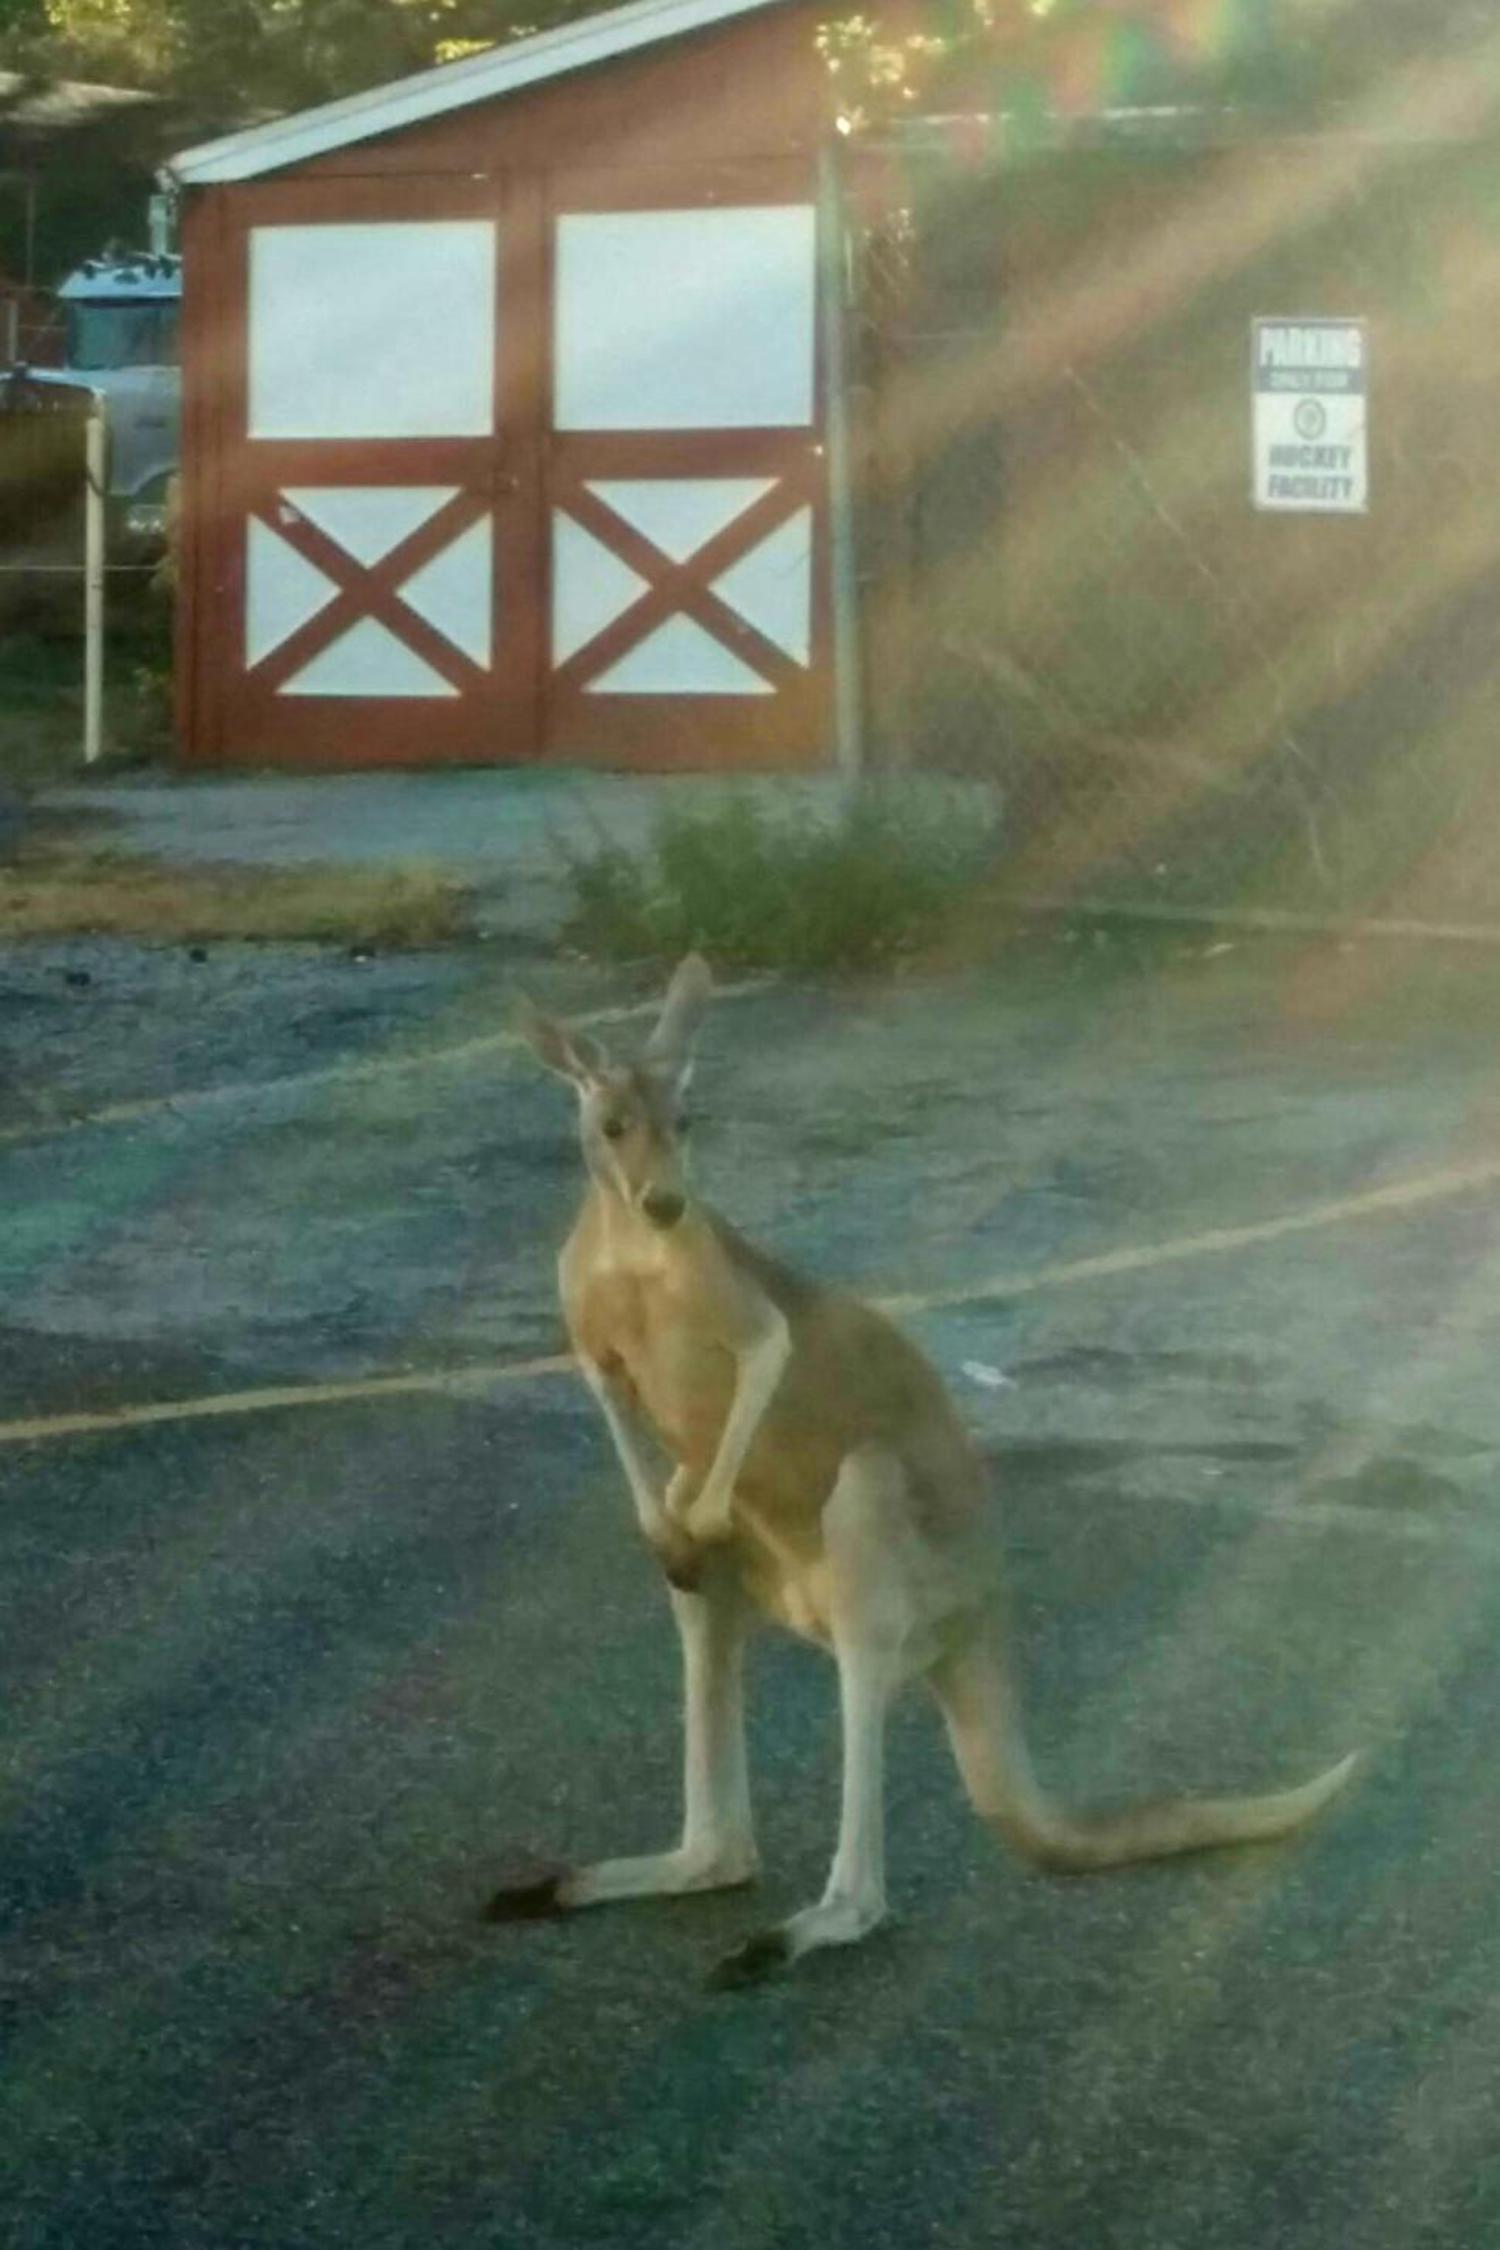 A pet kangaroo escaped from his enclosure at a Staten Island home on Saturday.